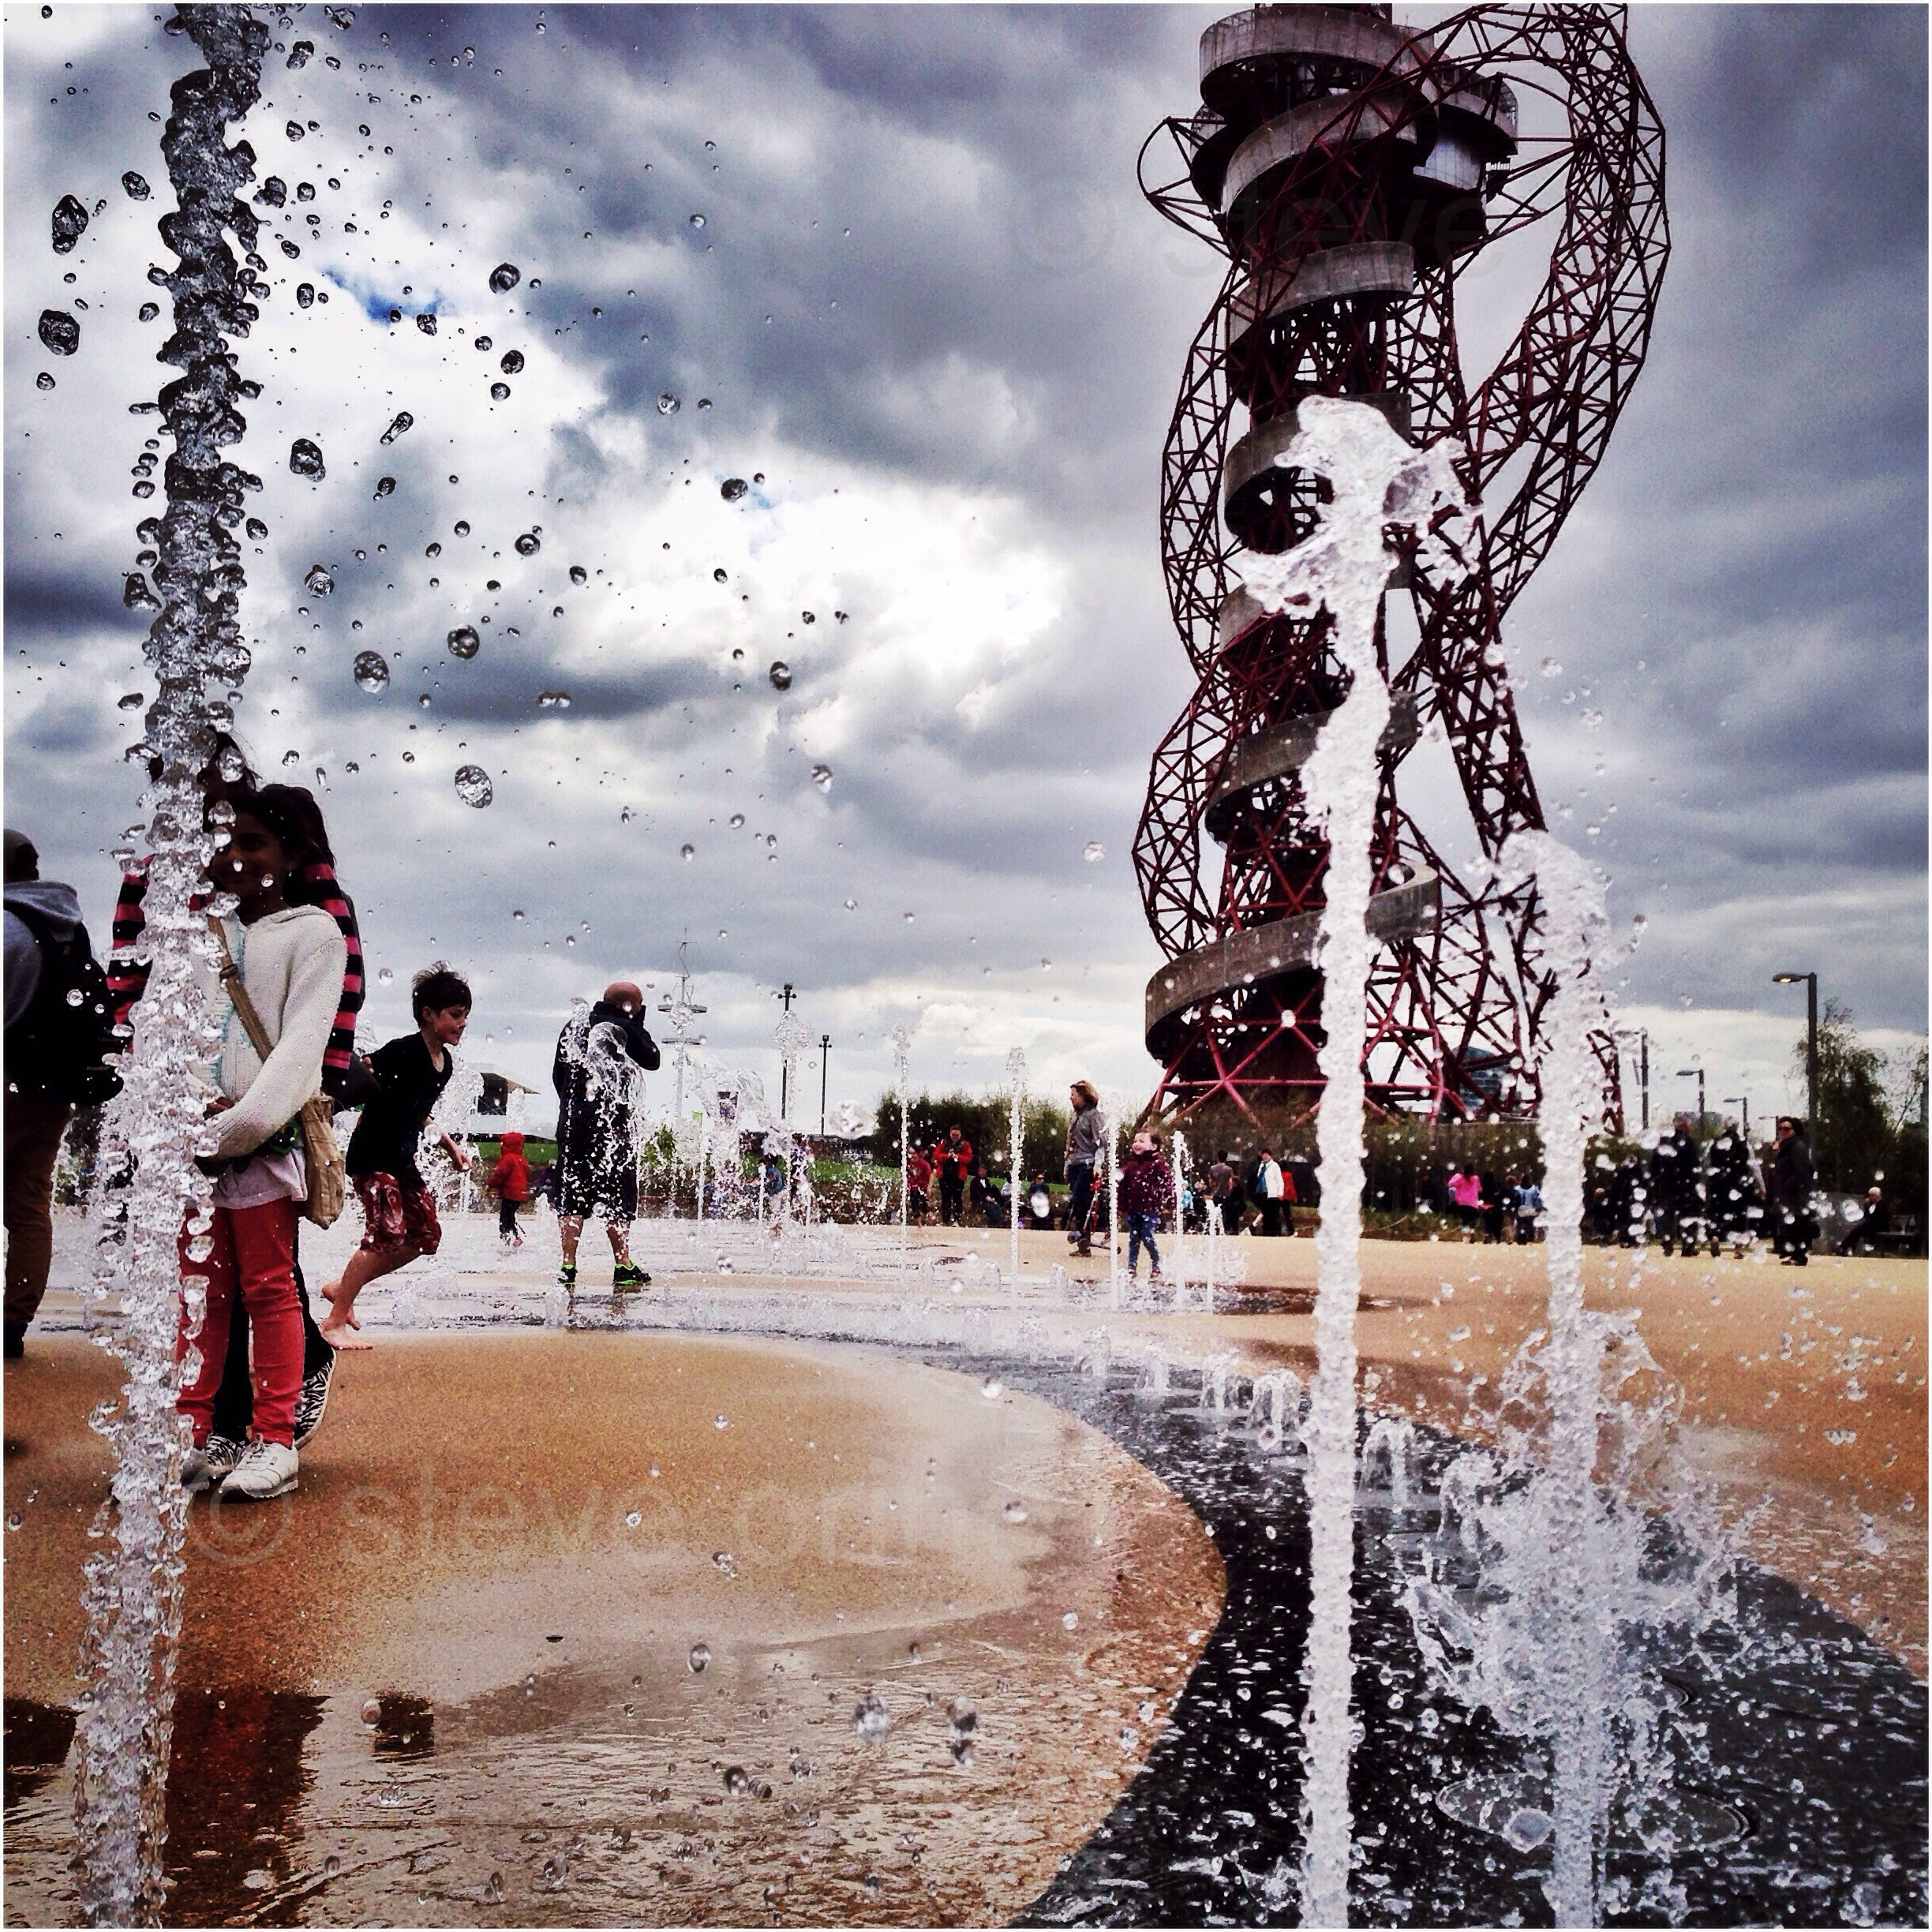 Orbit Circus fountains